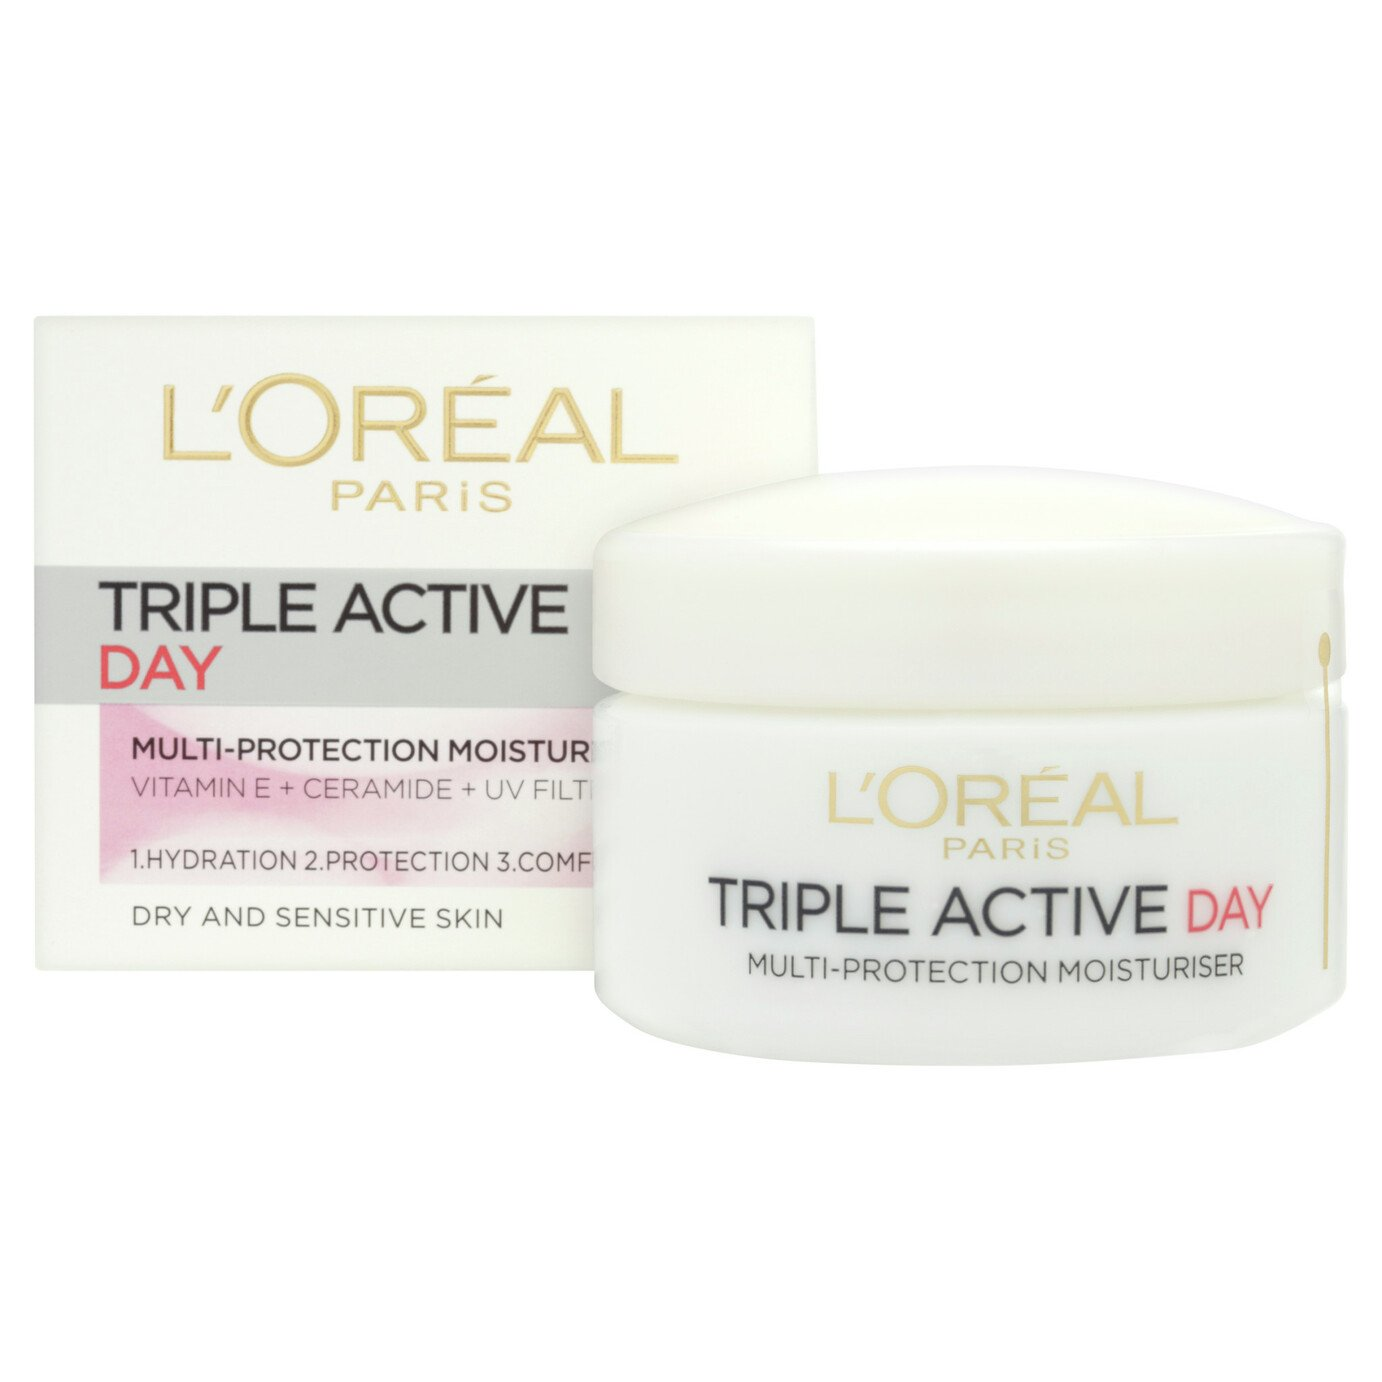 L'Oreal Paris Triple Active Day Sensitive Moisturiser - 50ml